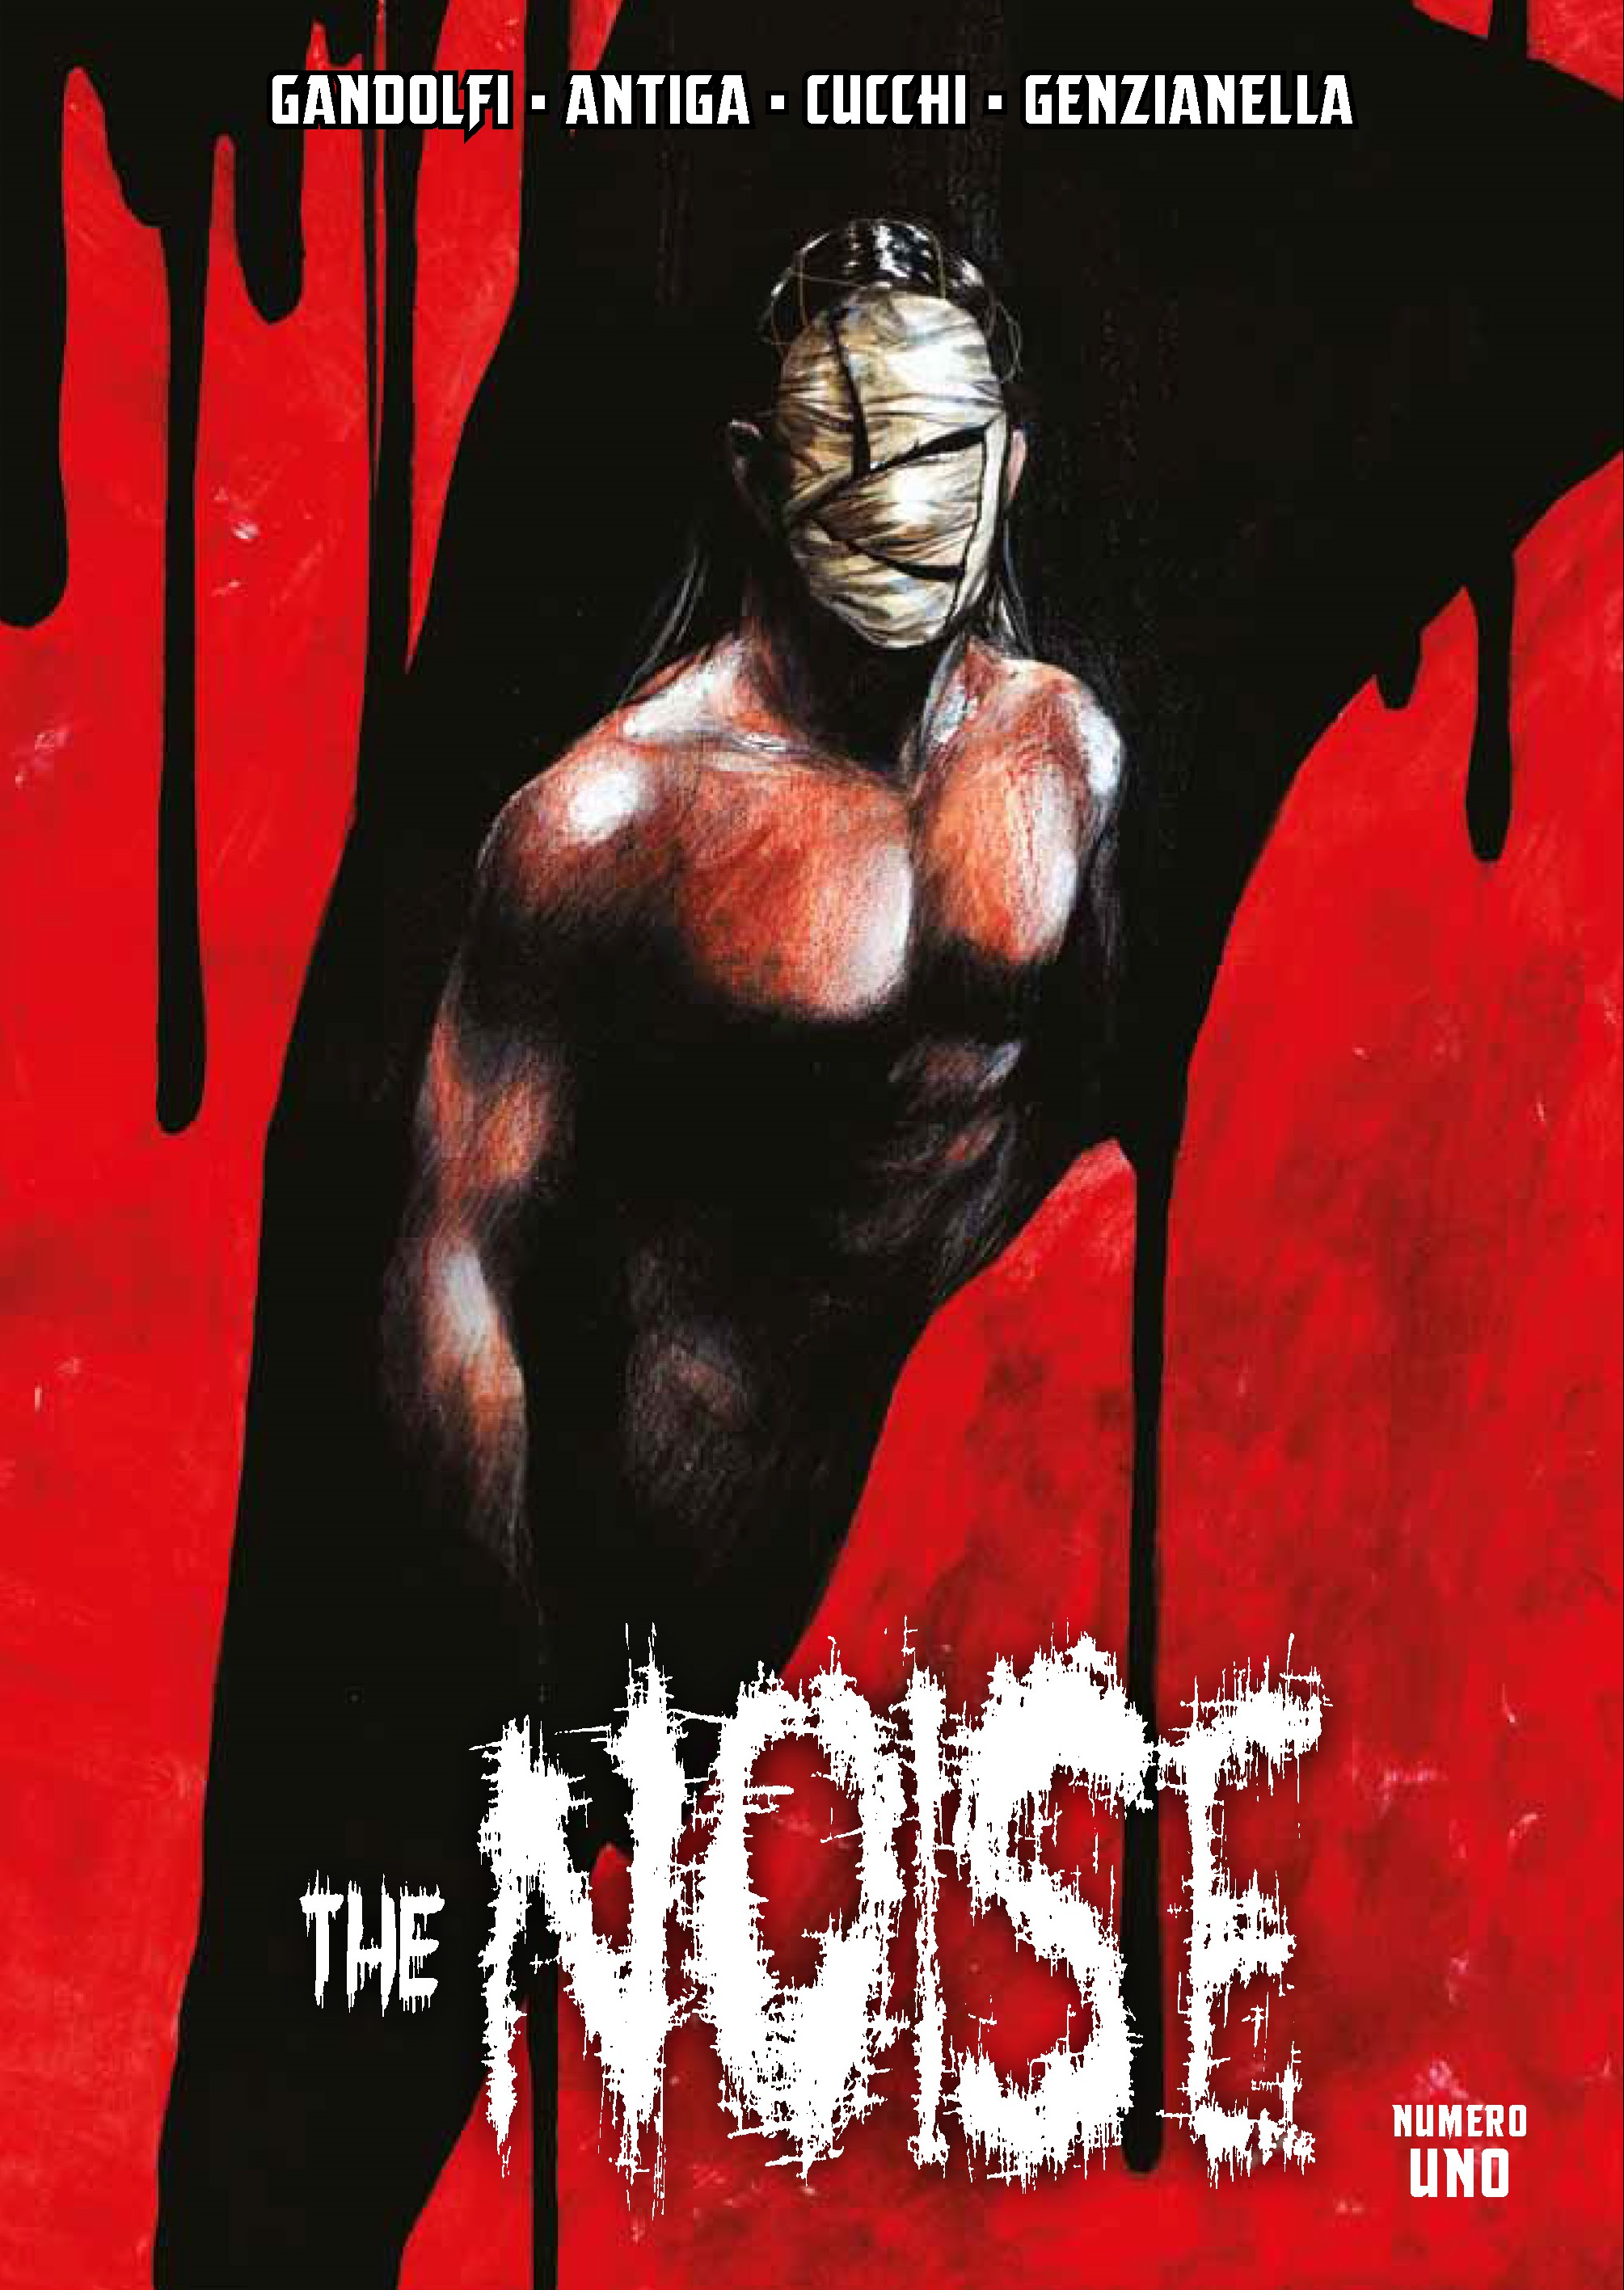 THE NOISE ancora quel rumore…